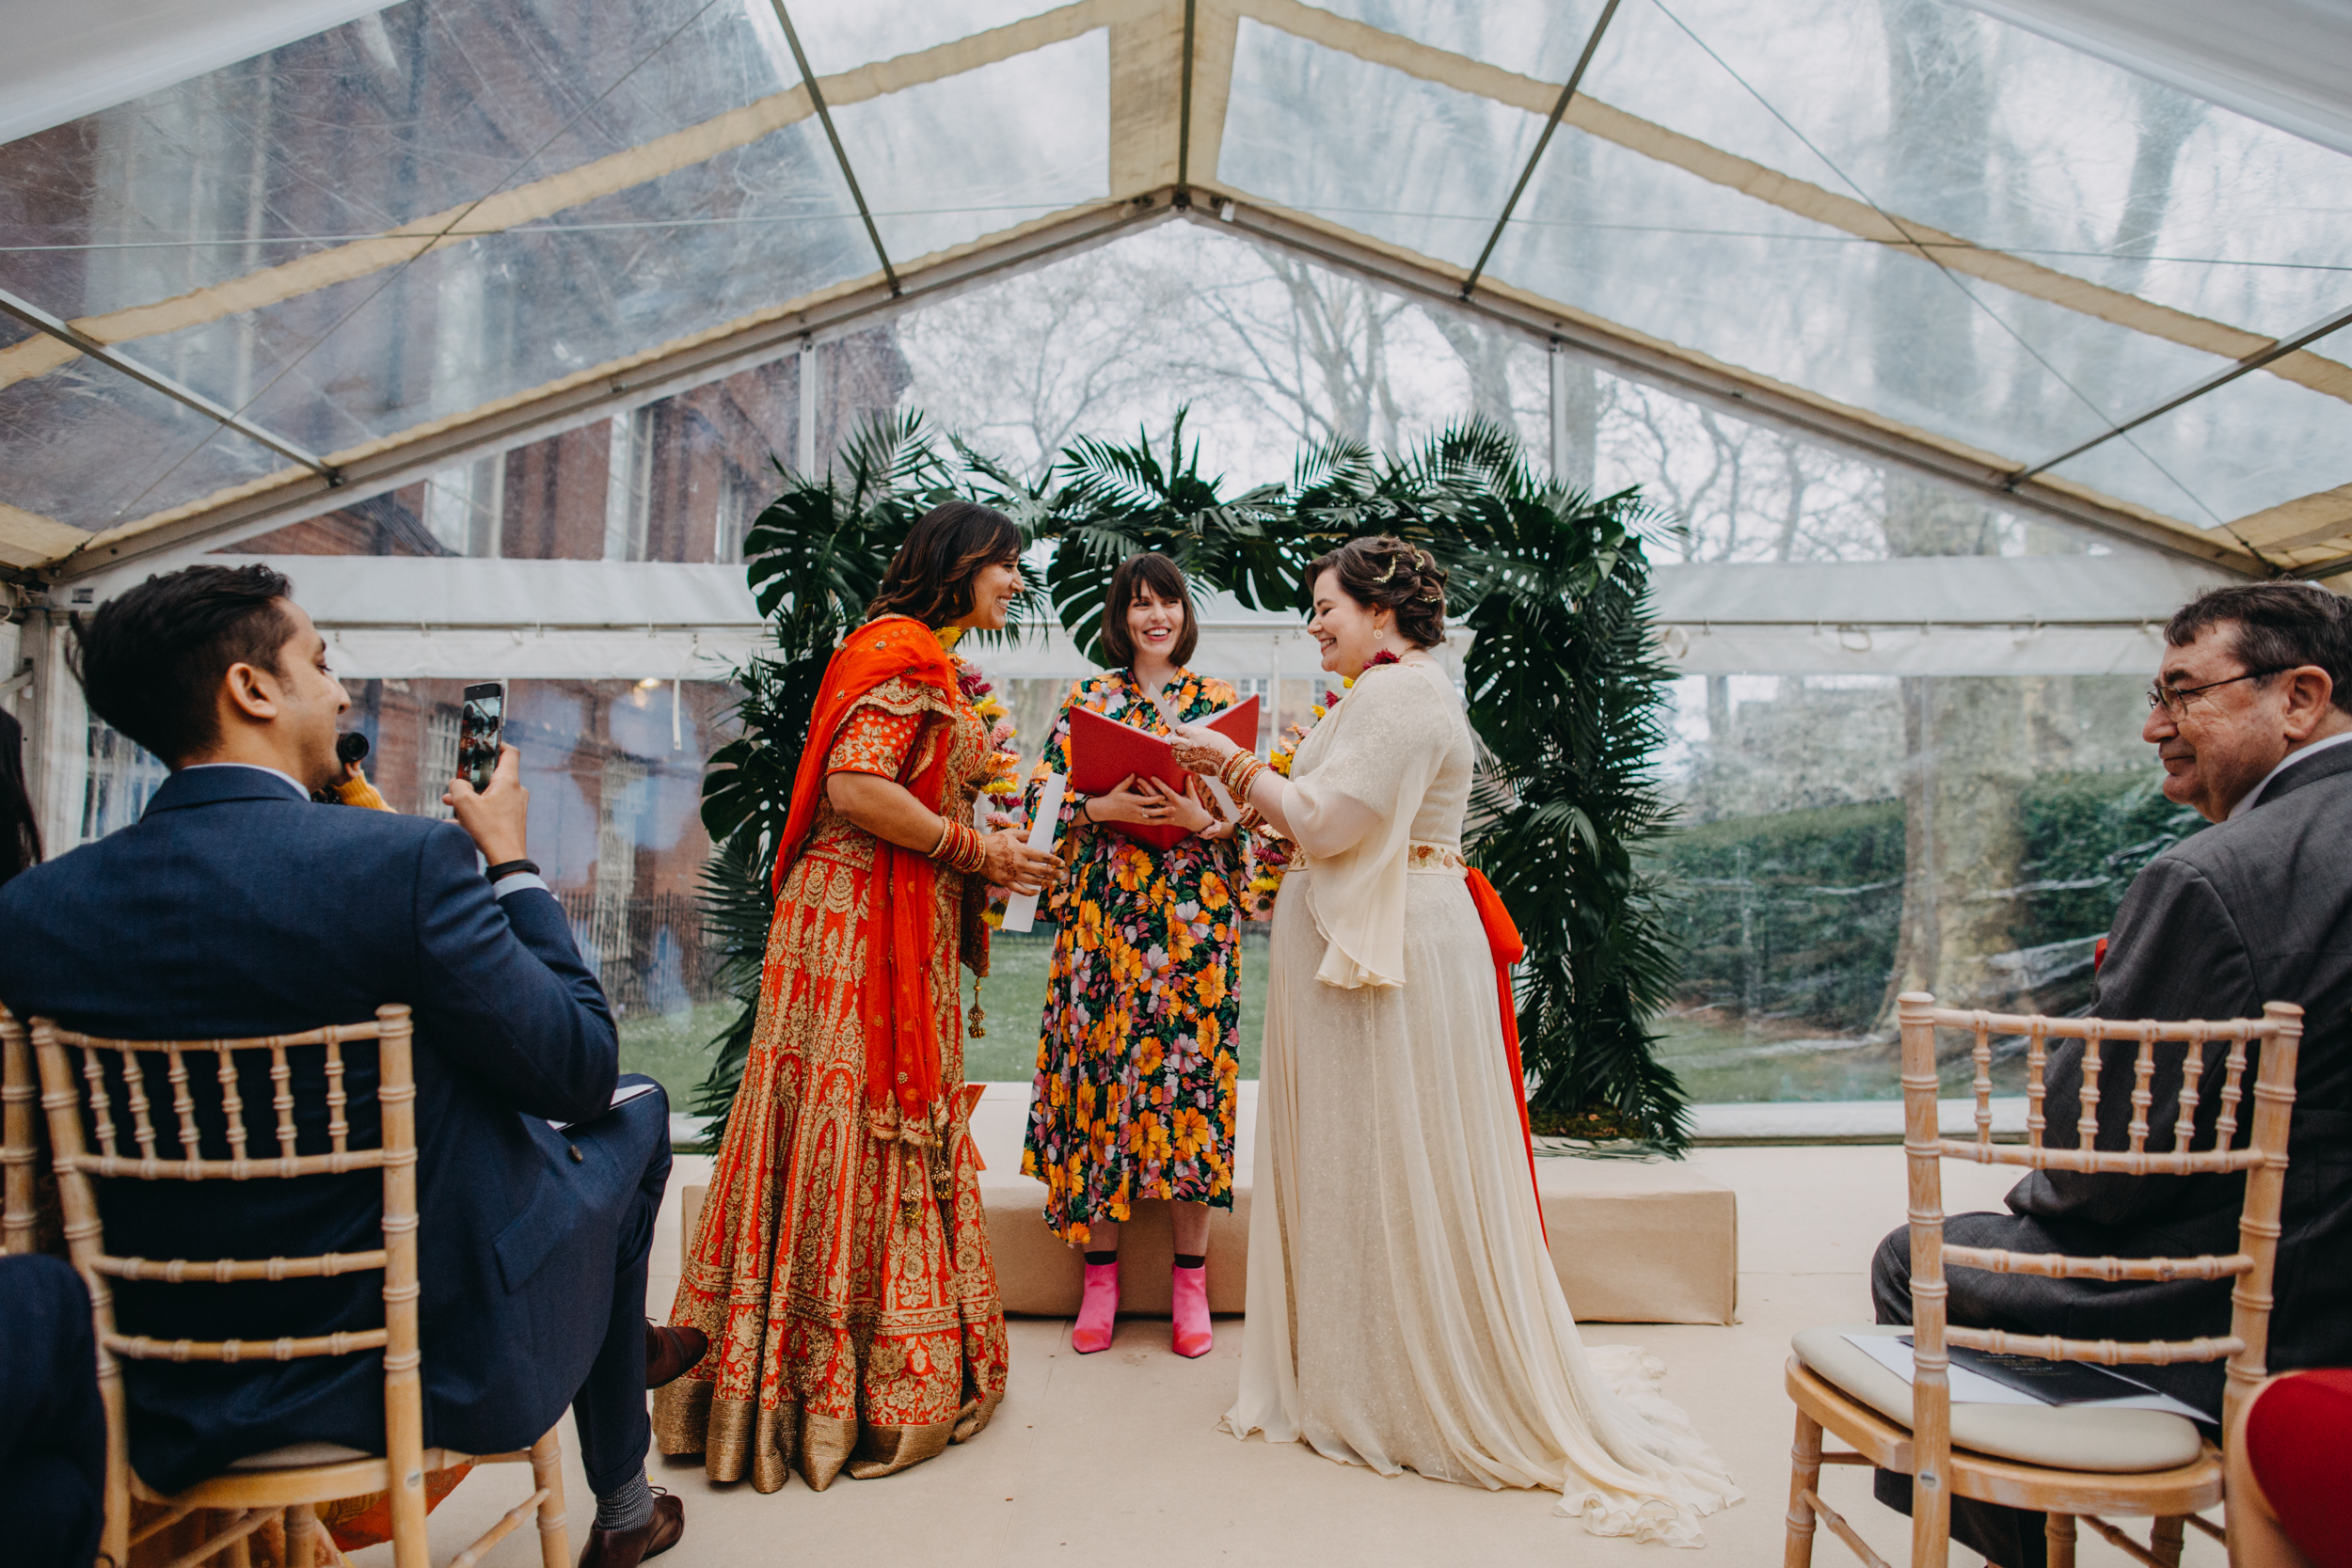 Kirsty and Reshma reading their surprise personal vows to each other during their Hindu-inspired Humanist wedding ceremony  Image by Lex Fleming